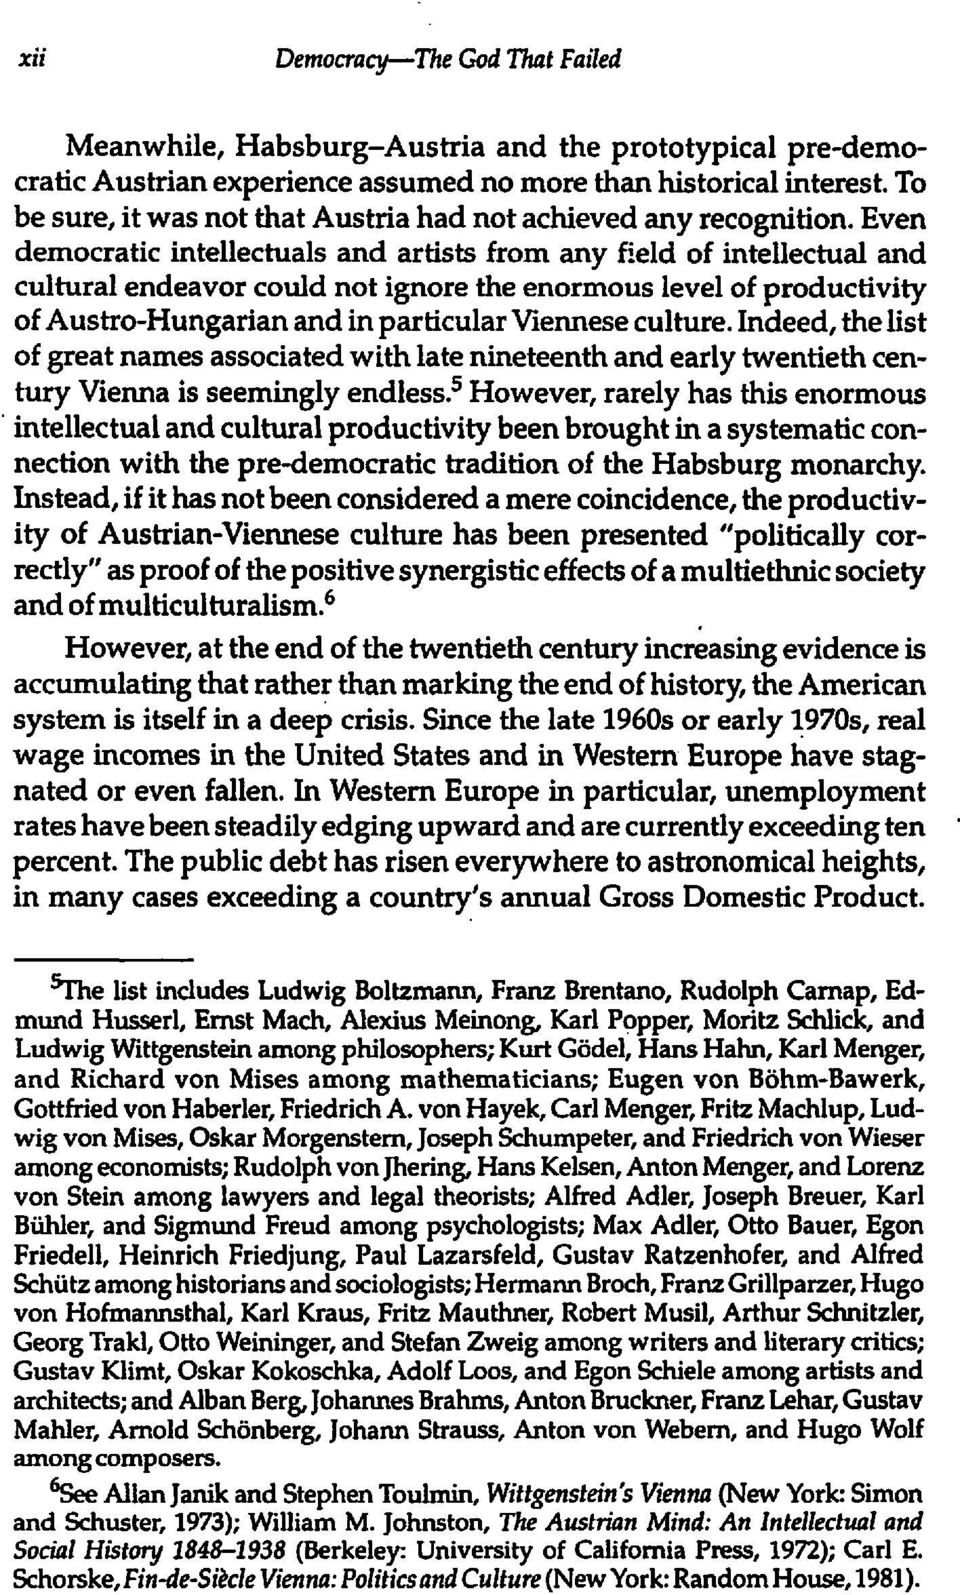 Even democratic intellectuals and artists from any field of intellectual and cultural endeavor could not ignore the enormous level of productivity of Austro-Hungarian and in particular Viennese